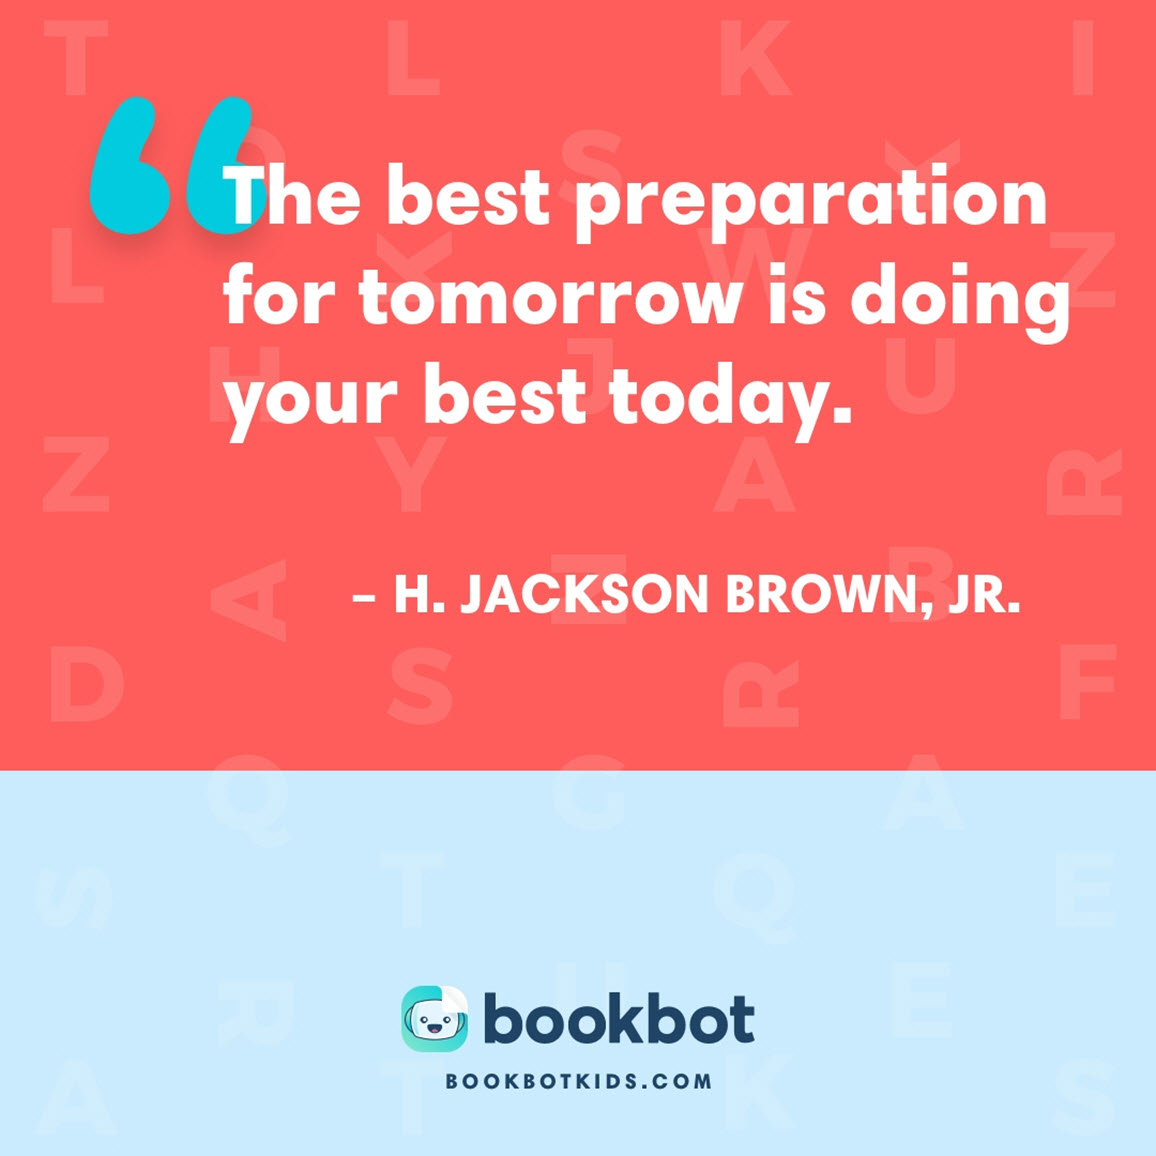 The best preparation for tomorrow is doing your best today. – H. Jackson Brown, Jr.